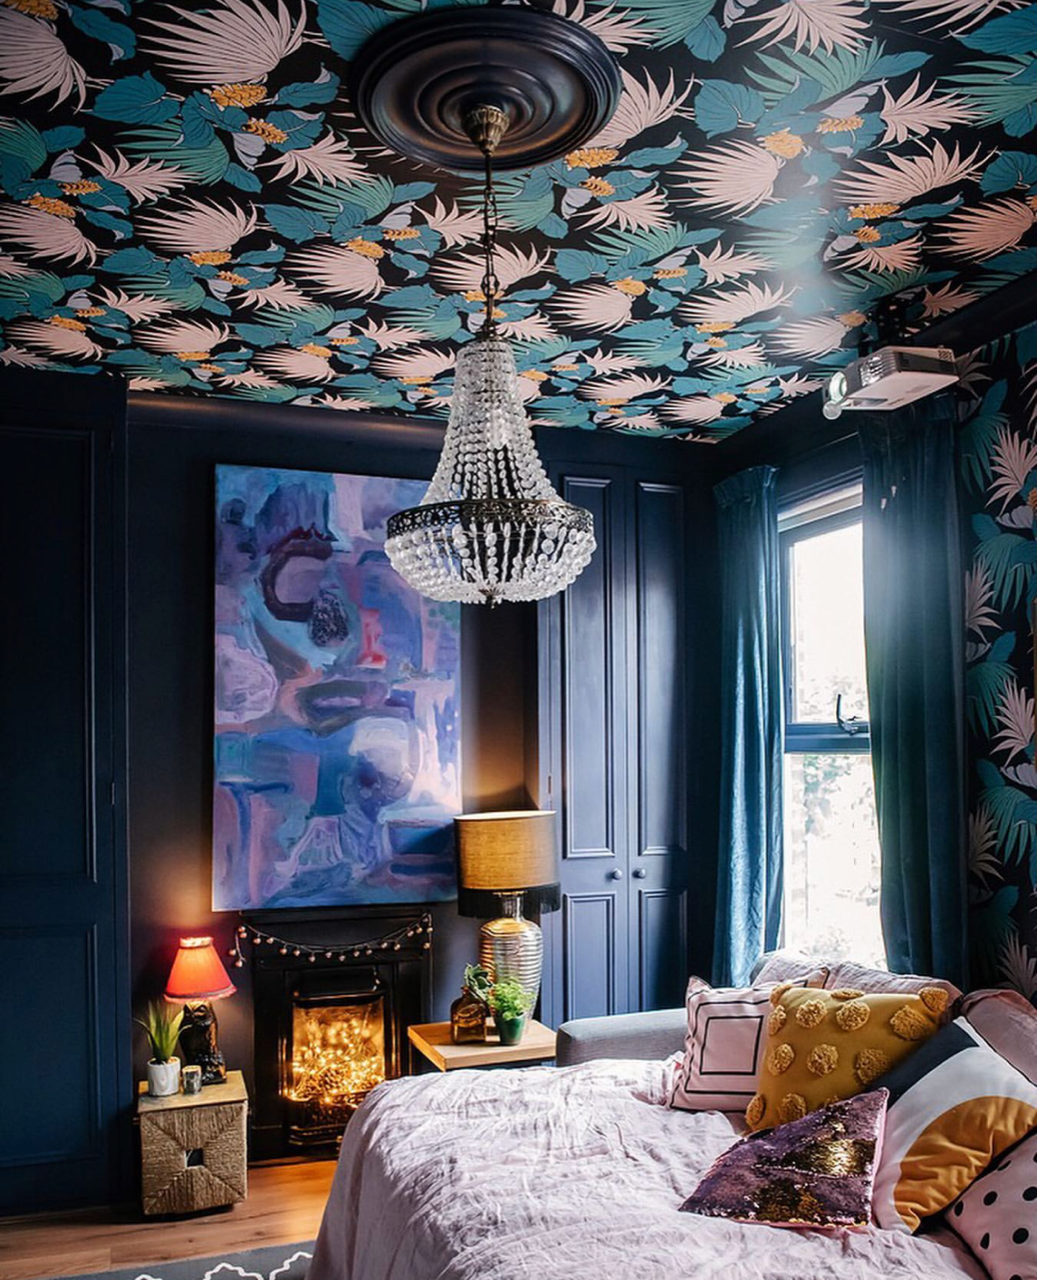 Interior Trends To Try The Decorated Ceiling Melanie Jade Design Wallpaper Ceiling Colored Ceiling Decor